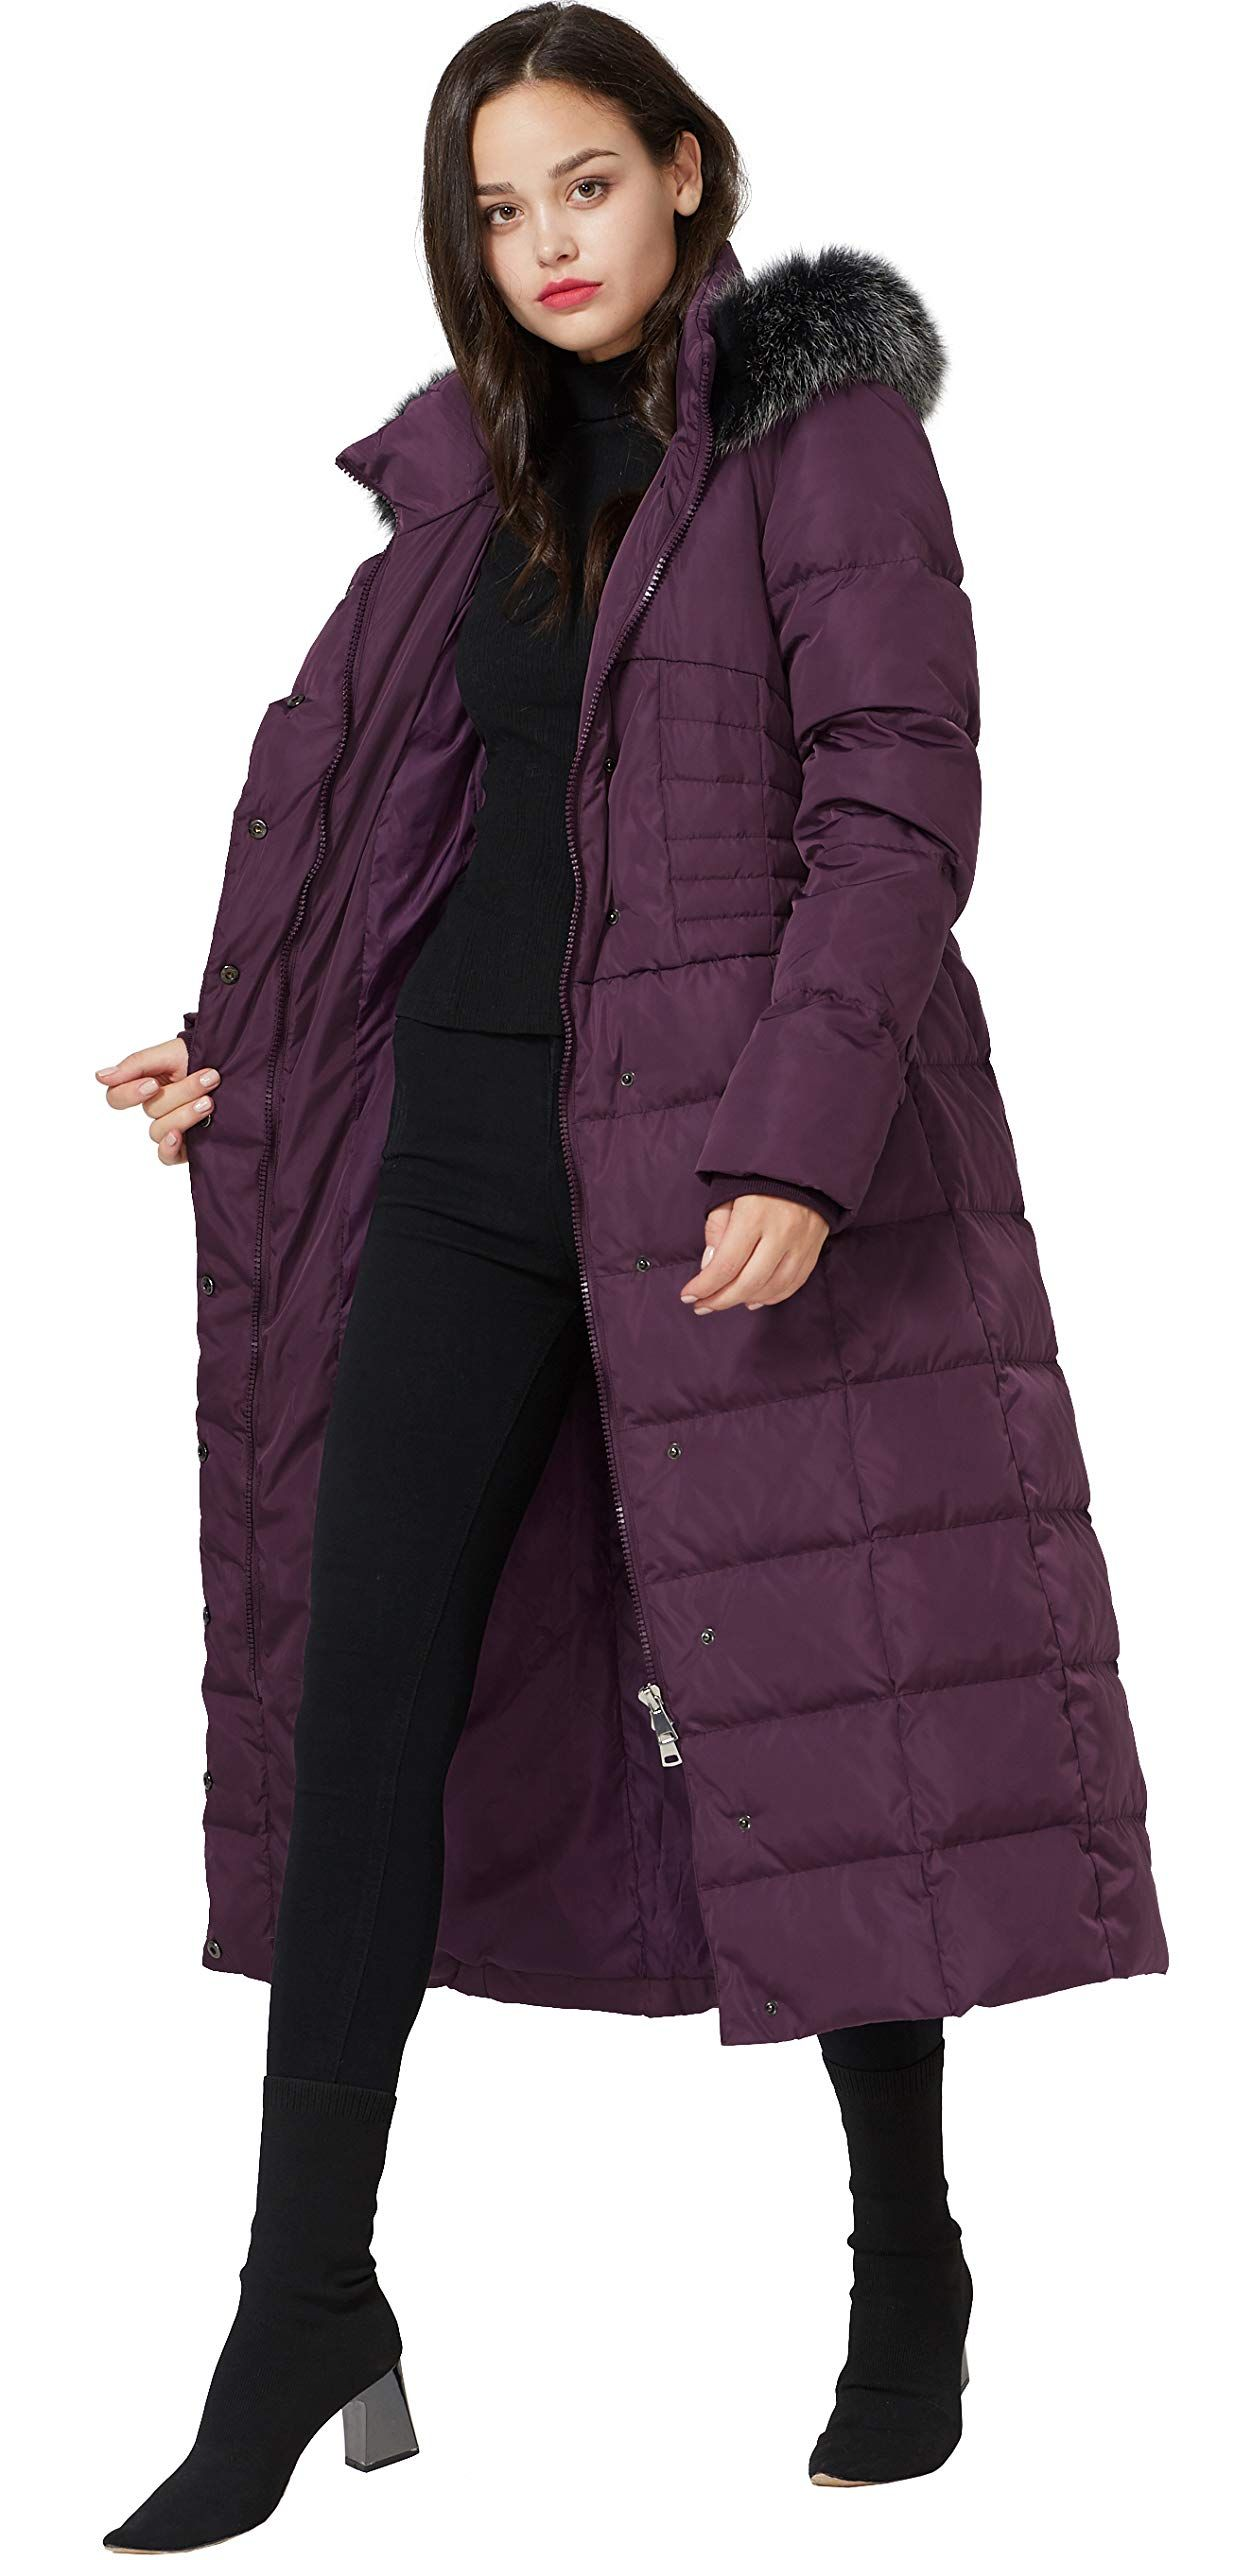 bc6751f4be5 Fashion Bug Plus Size Women s Long Down Coat with Fur Hood Maxi Down Parka  Puffer Jacket X-Large www.fashionbug.us  fashionbug  plussize  jackets   coats   ...